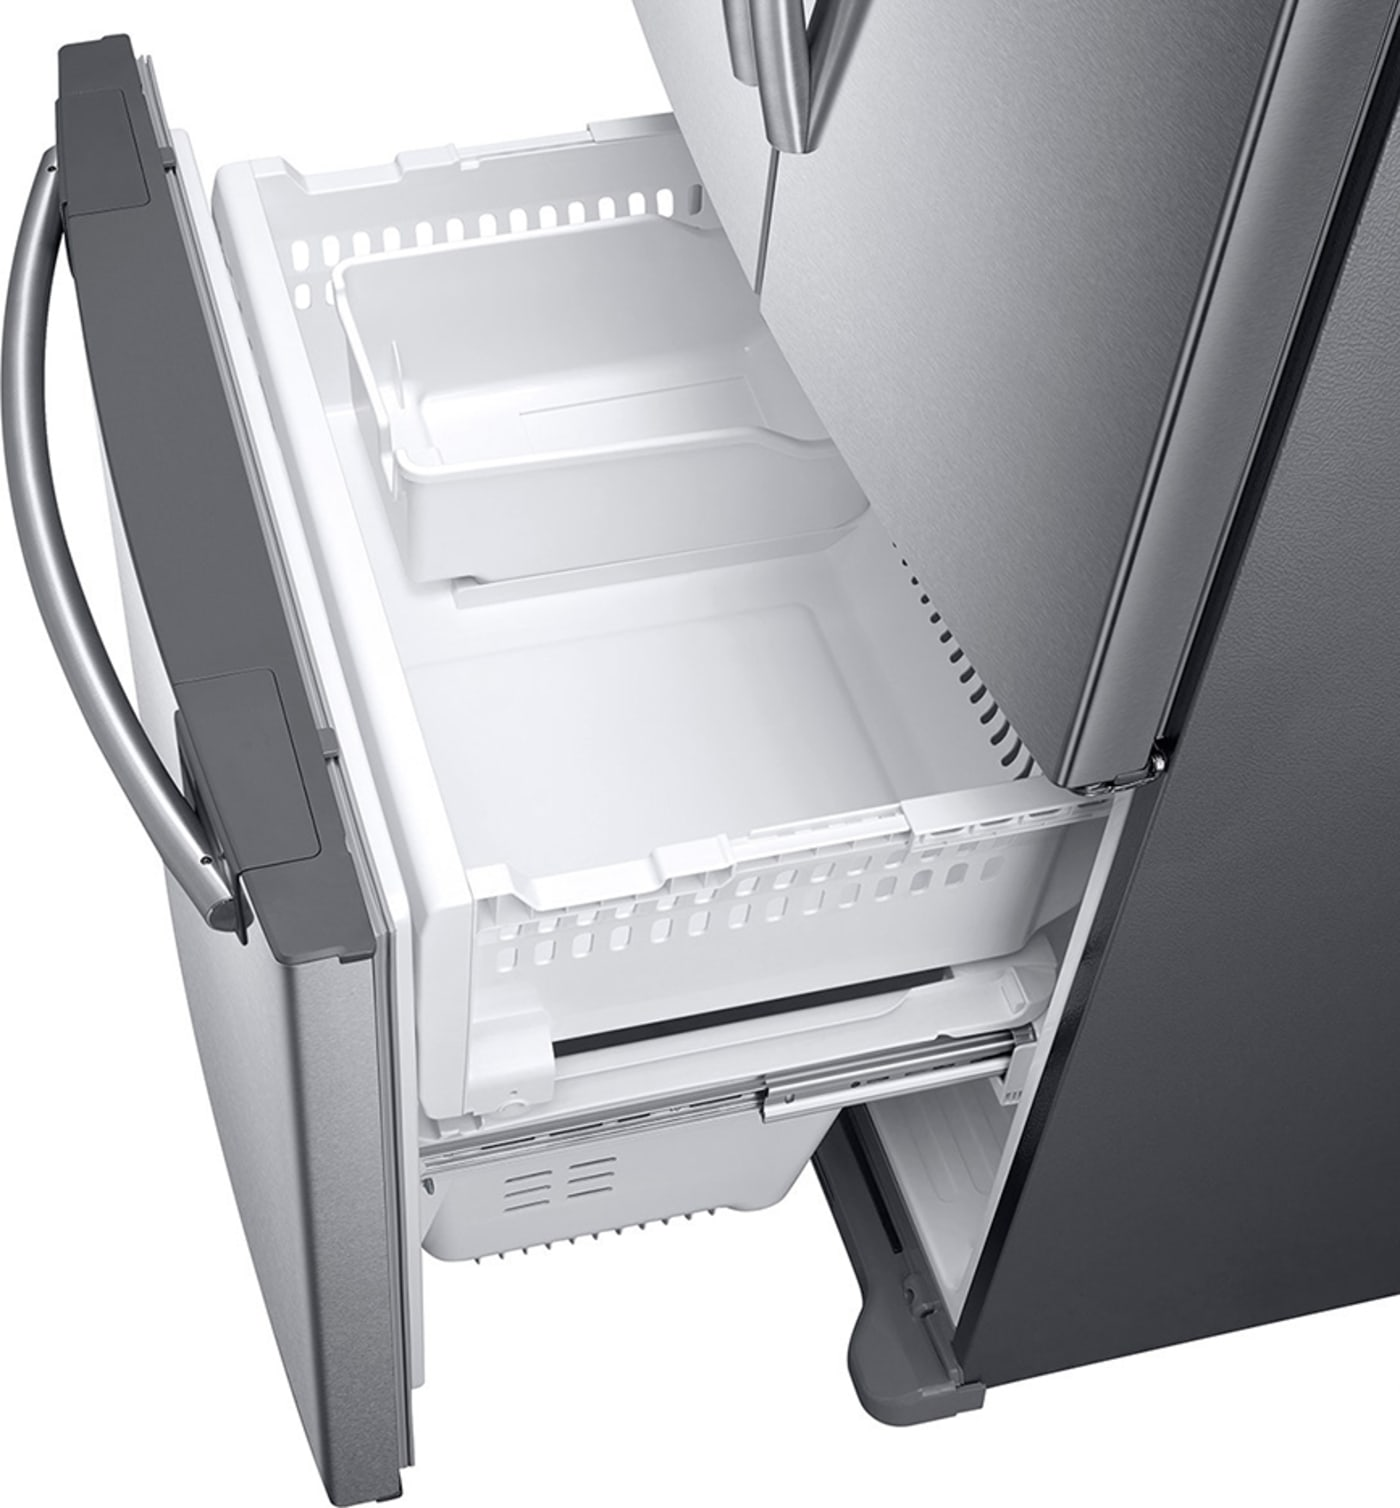 Rf20hfenbsr By Samsung French Door Refrigerators